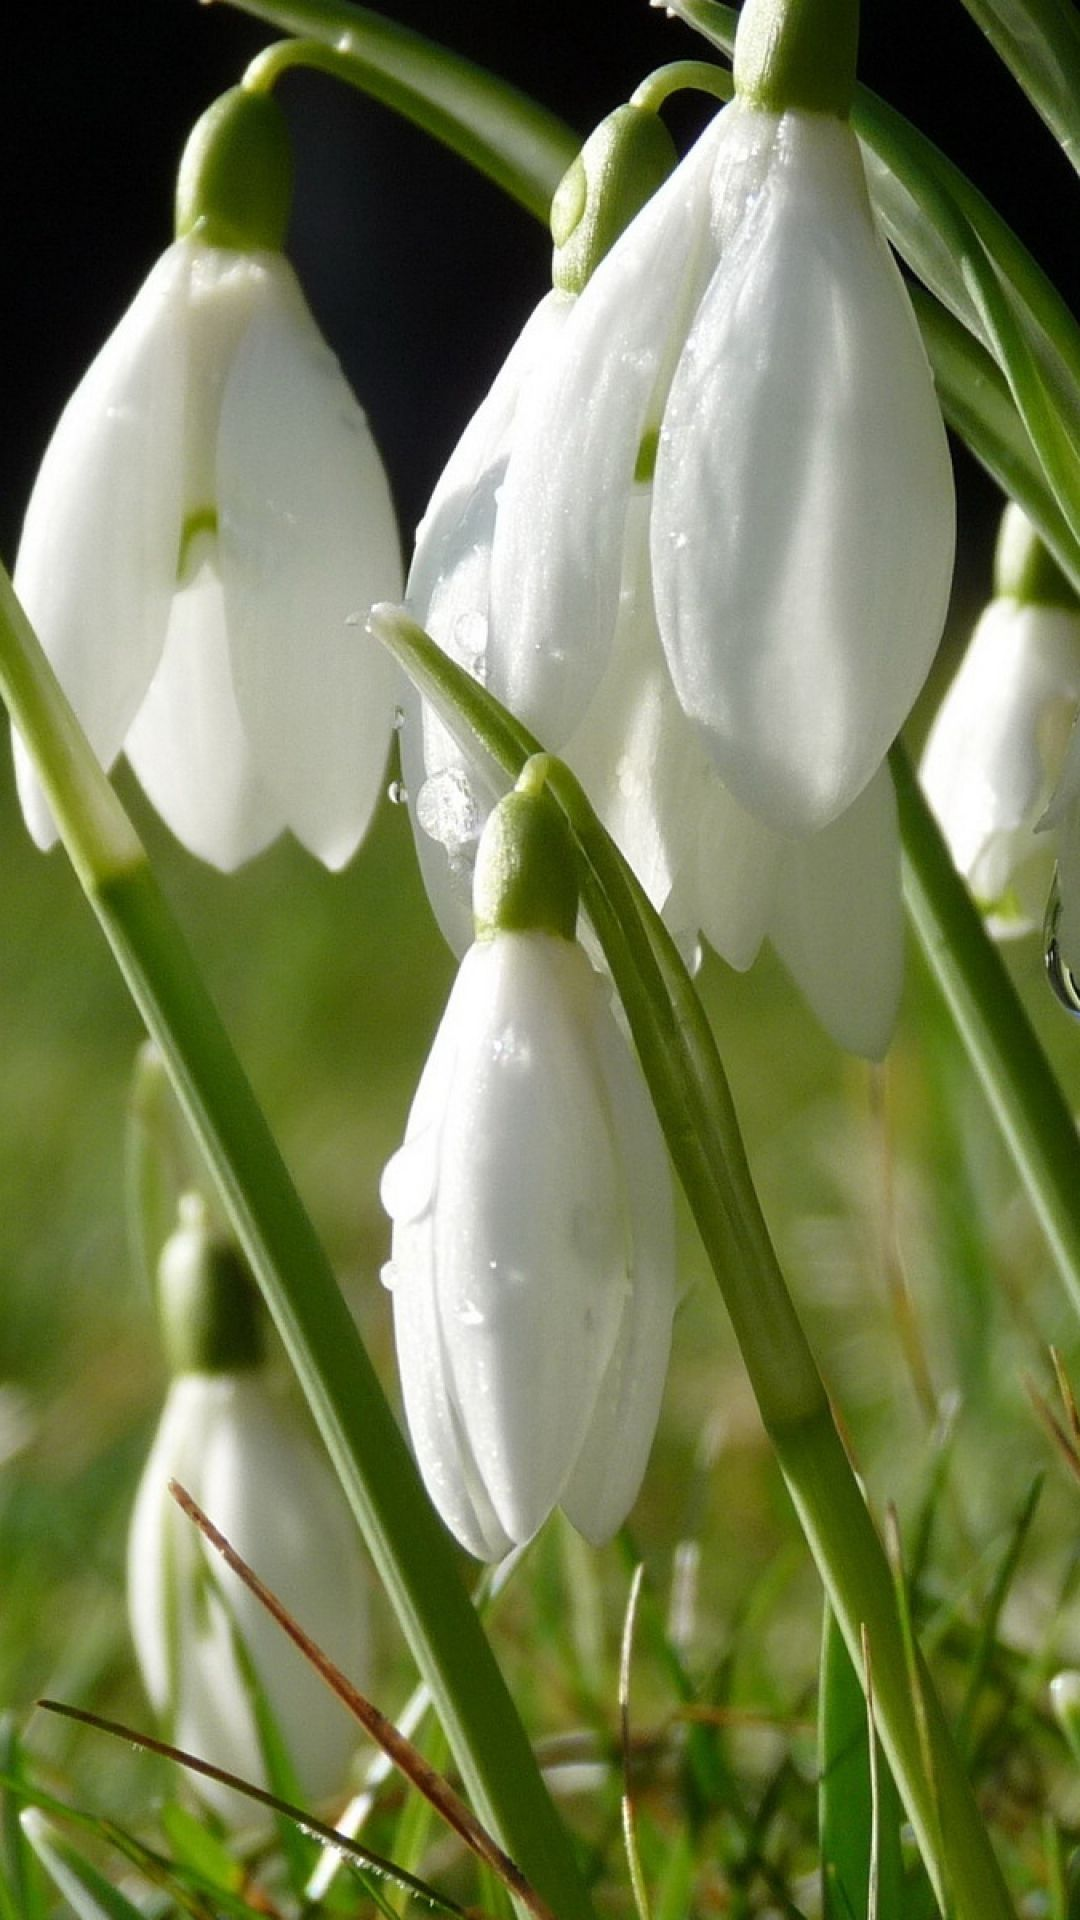 Snowdrops Flowers Grass Drops Dew Spring First Flowers Of Spring Spring Flowers Flowers